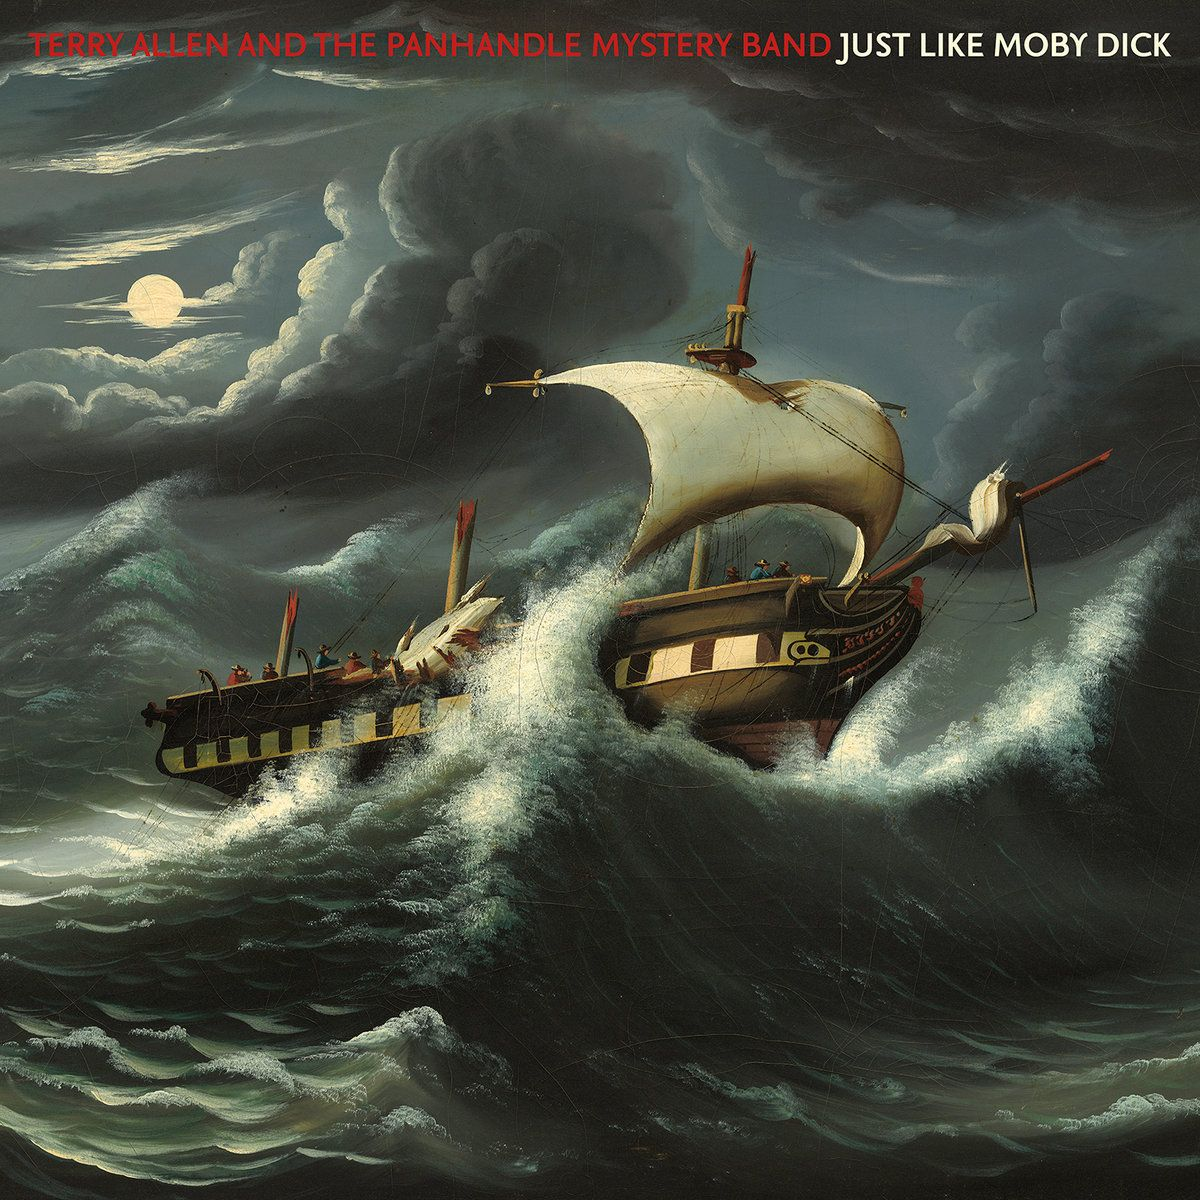 Just Like Moby Dick